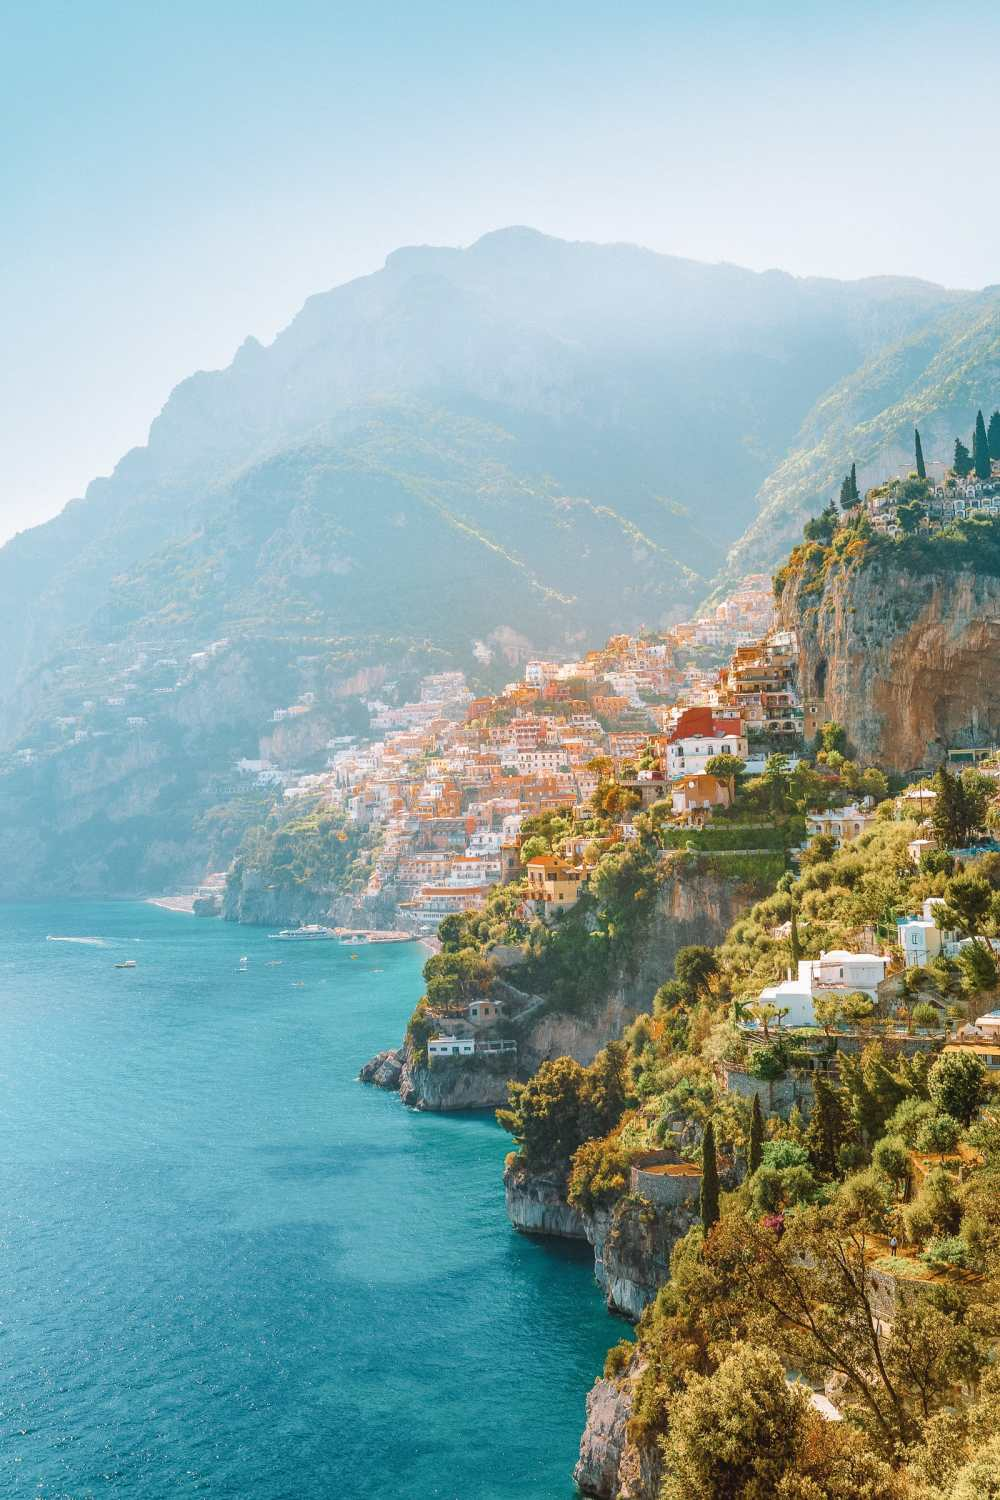 12 Beautiful Places In The Amalfi Coast Of Italy That You Have To Visit (16)